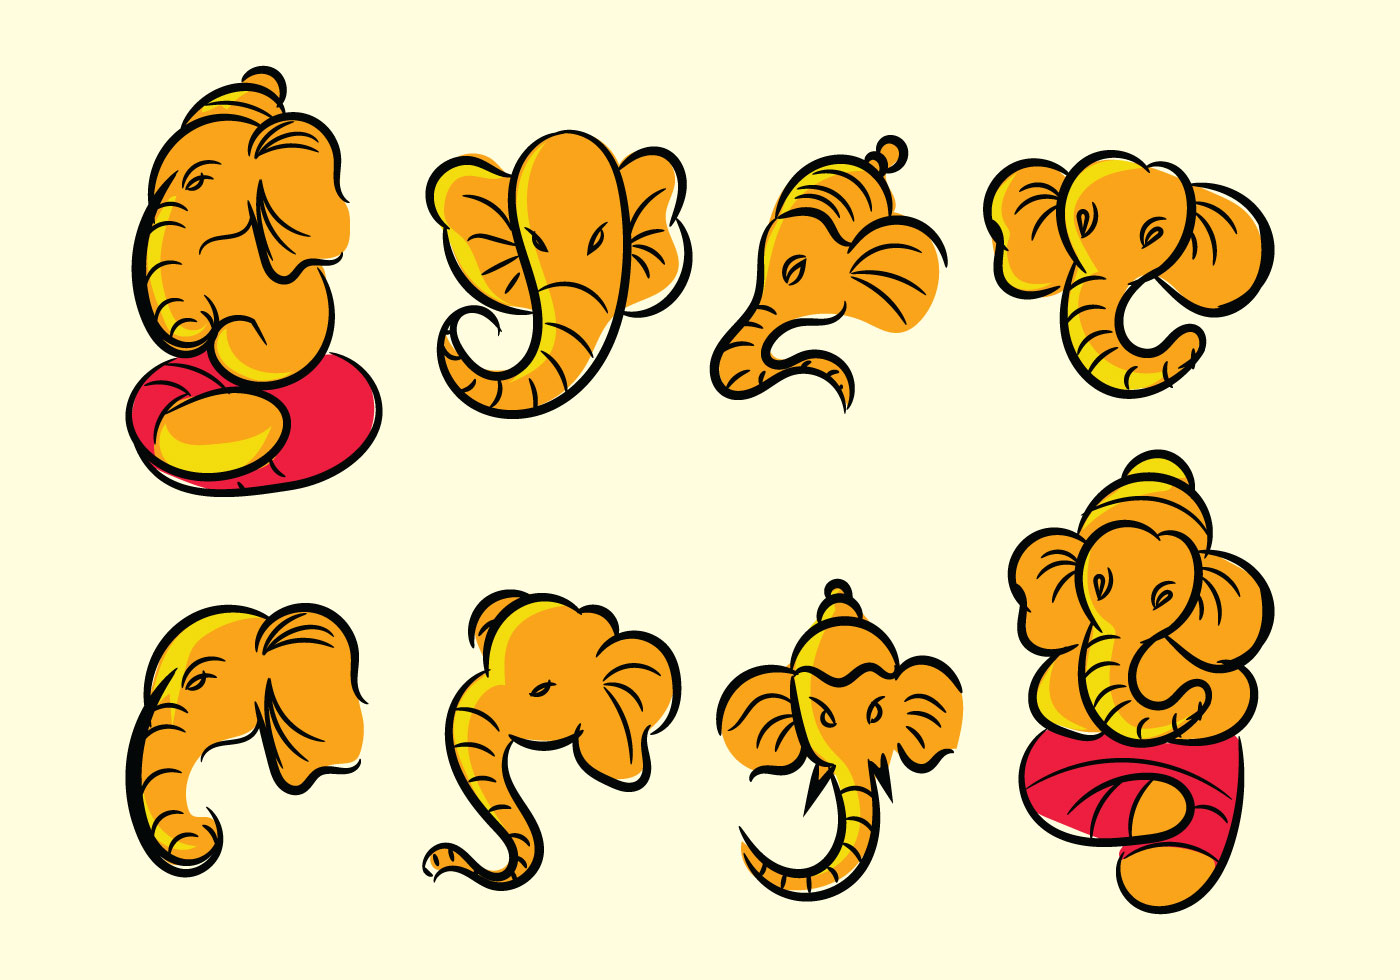 Ganesh Icon Vector - Download Free Vector Art, Stock Graphics & Images